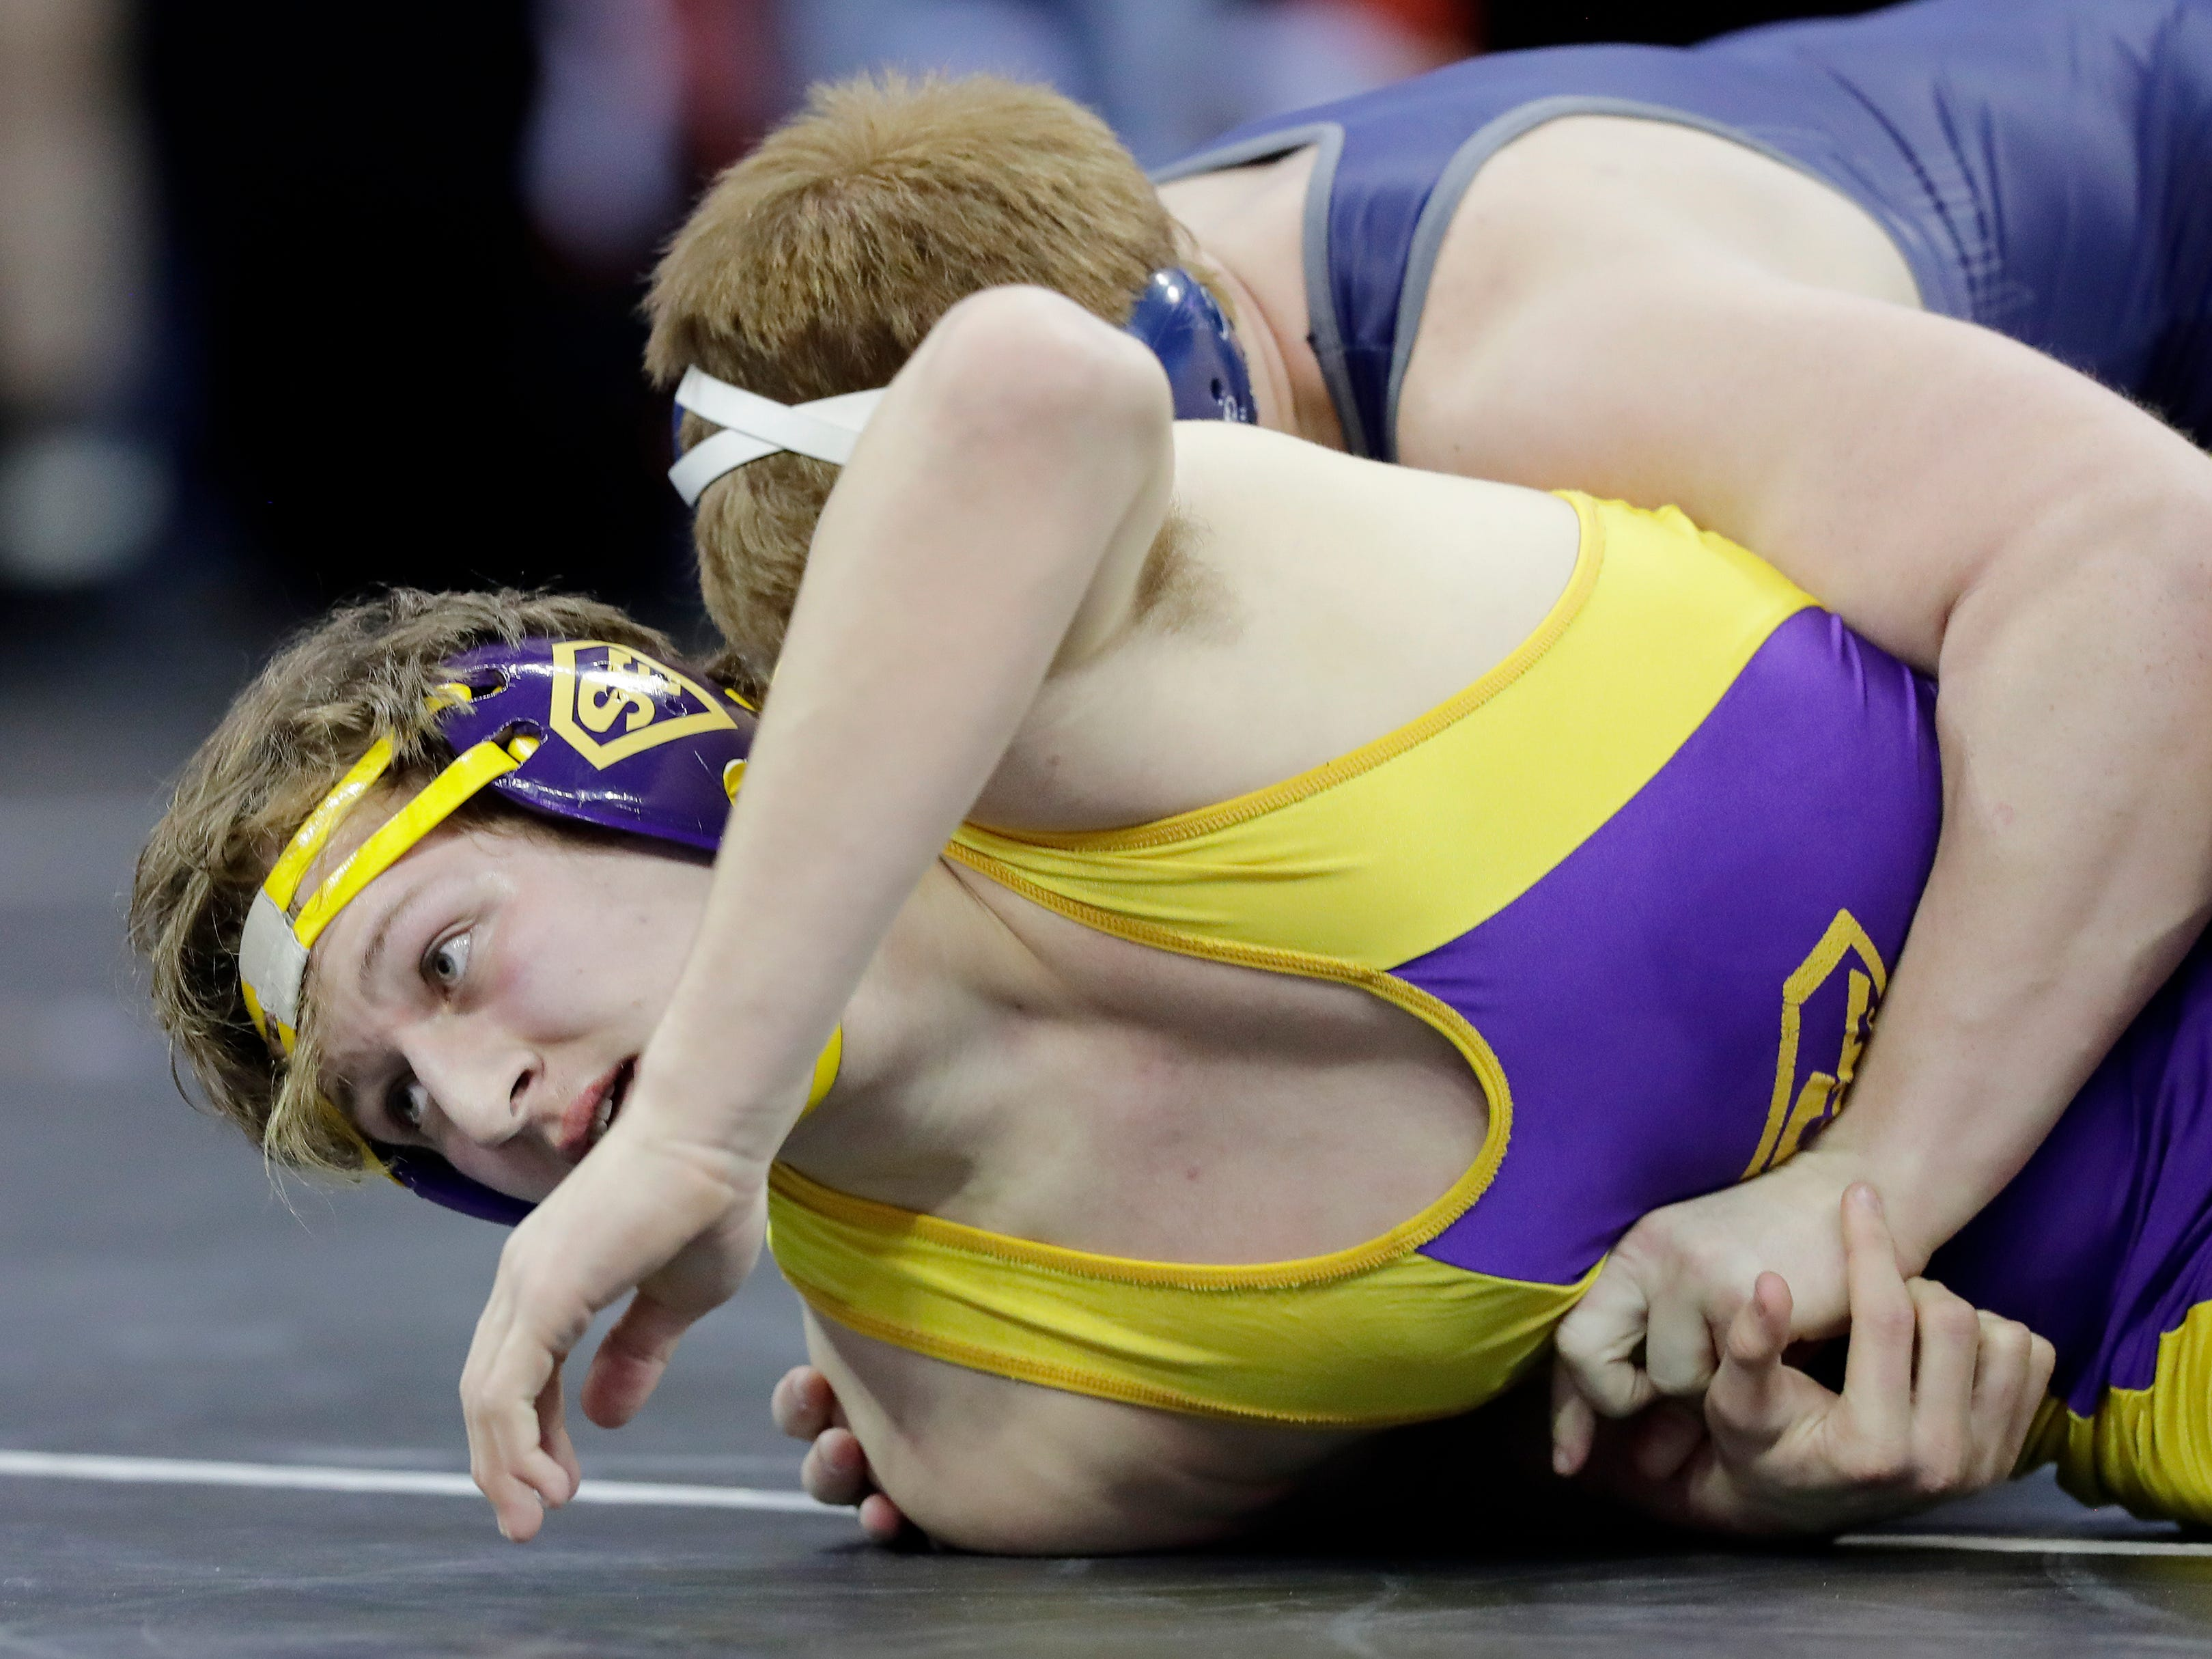 Sheboygan Falls' Connor Pierce wrestles in a Division 2 220-pound preliminary match at the WIAA state individual wrestling tournament at the Kohl Center on Thursday, February 21, 2019 in Madison, Wis.